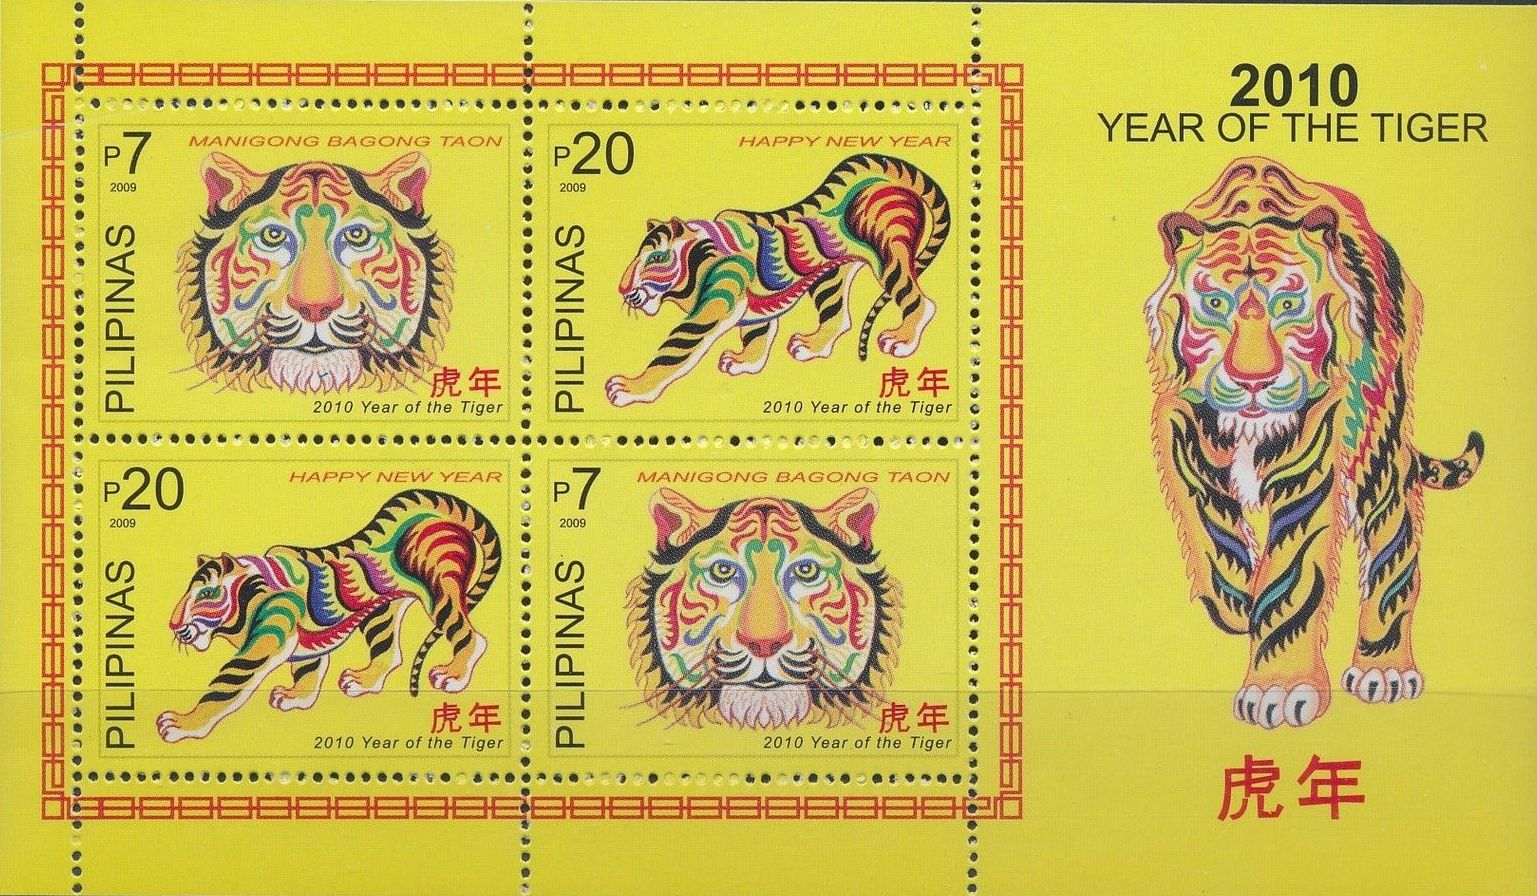 Philippines 2009 Year of the Tiger - 2010 f.jpg